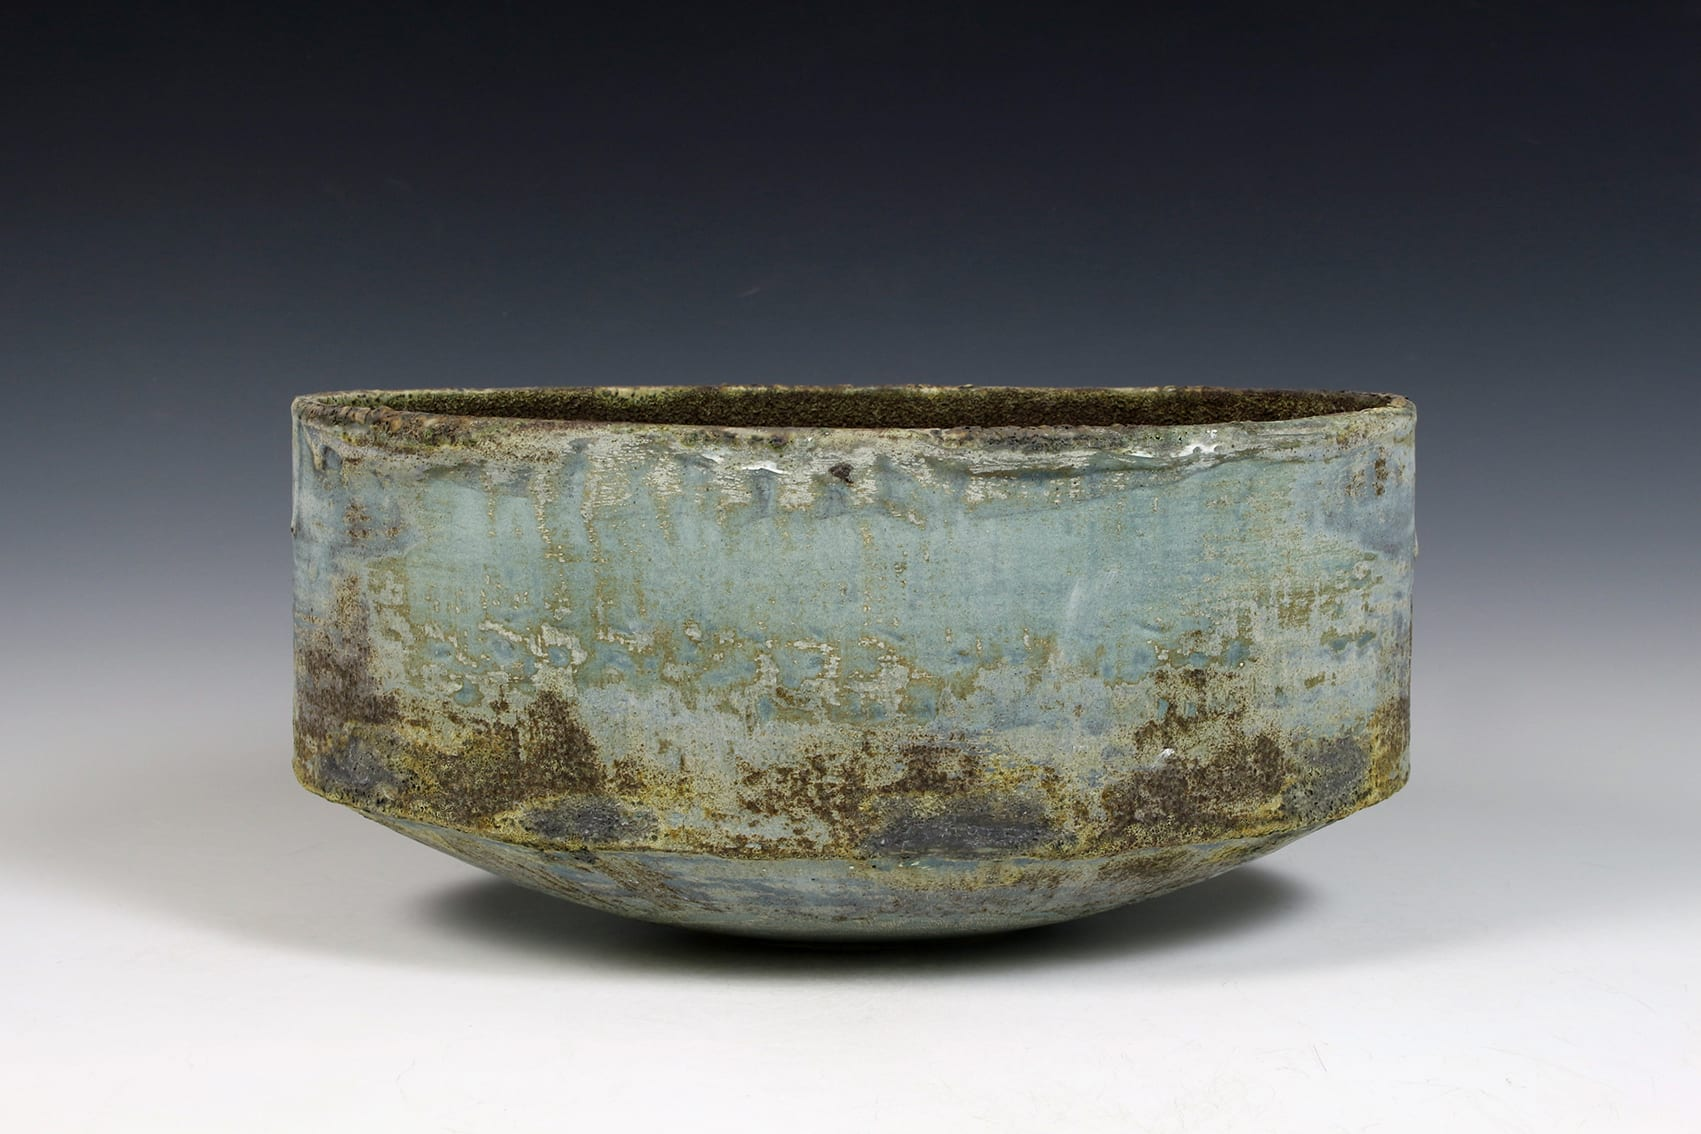 """<span class=""""link fancybox-details-link""""><a href=""""/content/feature/40/artworks8000/"""">View Detail Page</a></span><div class=""""signed_and_dated"""">impressed seal mark 'PW'</div> <div class=""""medium"""">stoneware, multiple slips and glazes</div> <div class=""""dimensions"""">14 x 30 x 17 cm</div>"""